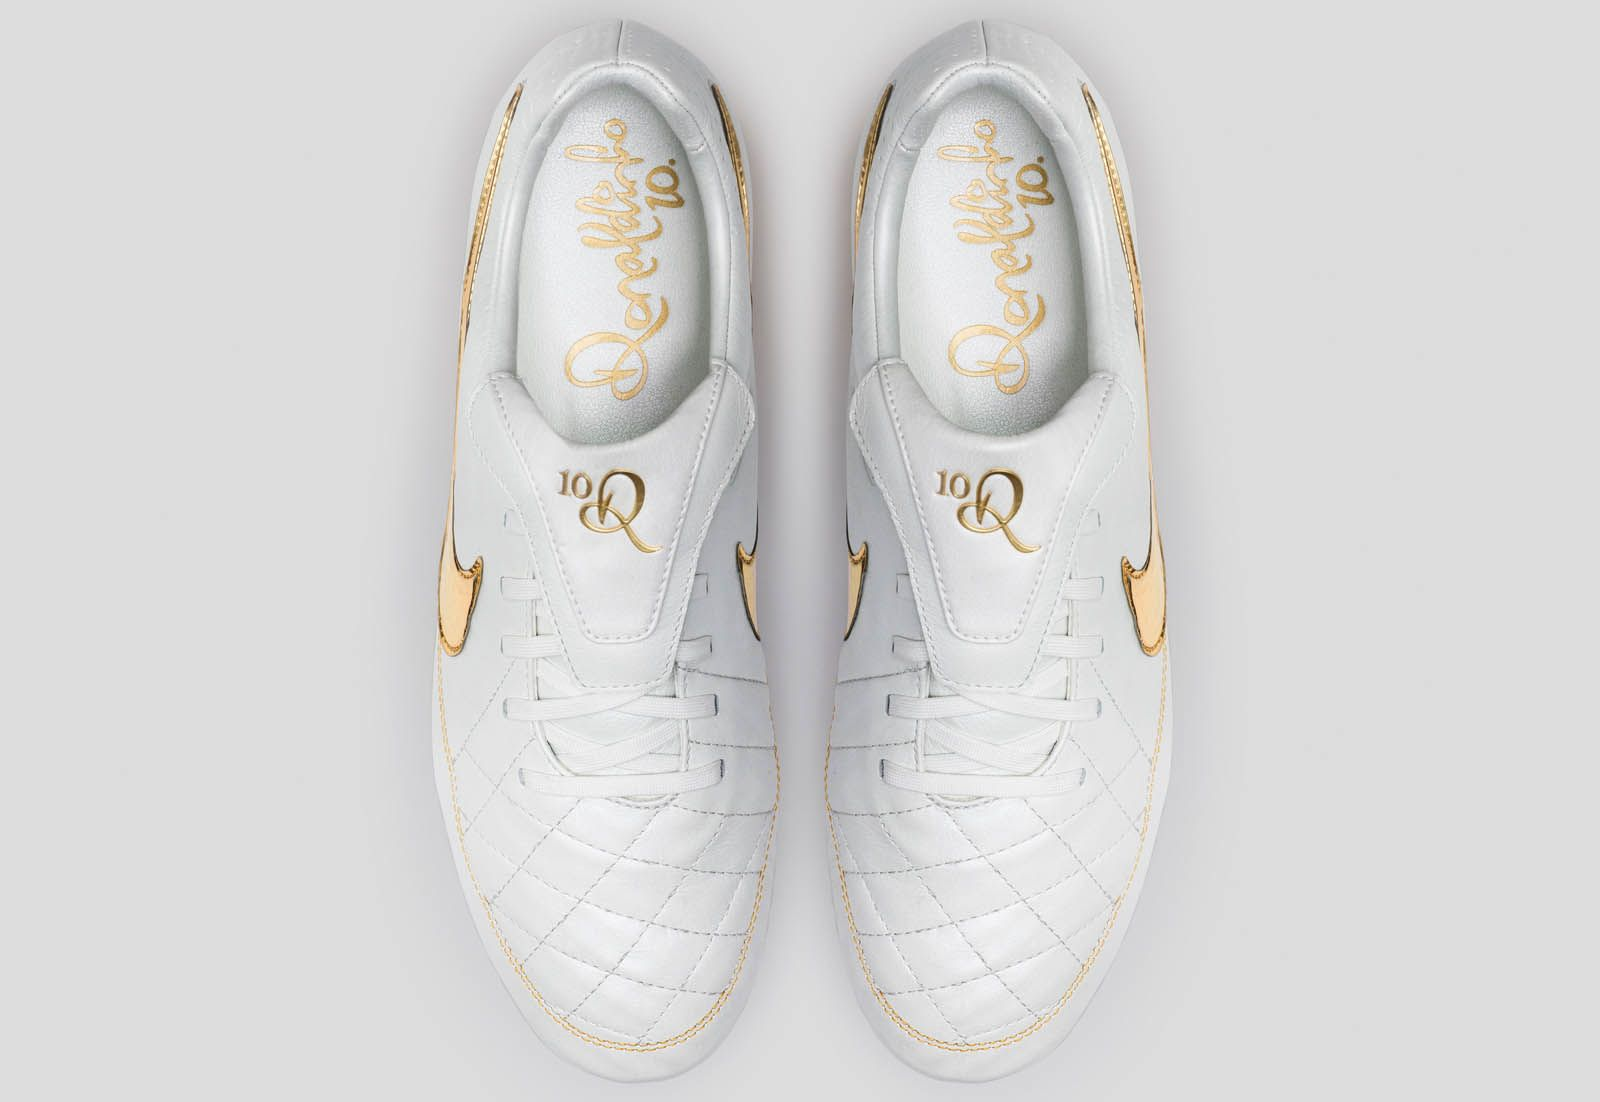 c9cdc459dcd5 The Nike Tiempo Legend Ronaldinho Boots celebrate Ronaldinho's magnificent  career in unrivaled fashion. A white base is combined with classy gold  accents to ...